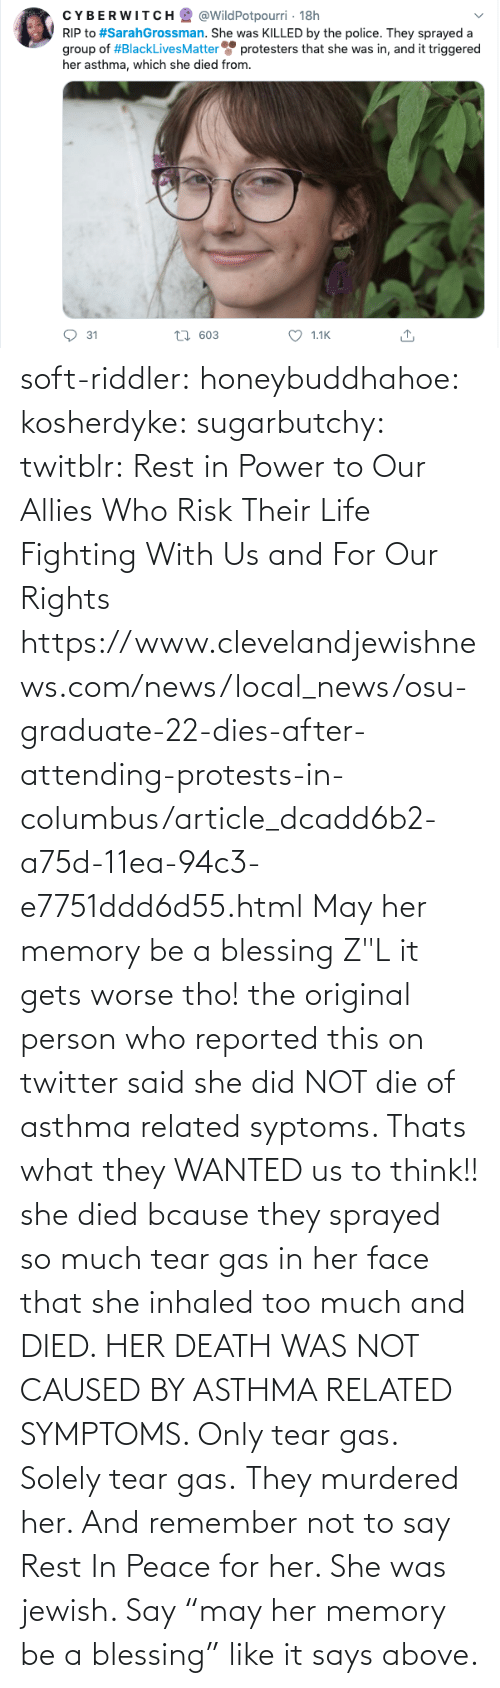 "too: soft-riddler:  honeybuddhahoe:  kosherdyke:  sugarbutchy:  twitblr: Rest in Power to Our Allies Who Risk Their Life Fighting With Us and For Our Rights https://www.clevelandjewishnews.com/news/local_news/osu-graduate-22-dies-after-attending-protests-in-columbus/article_dcadd6b2-a75d-11ea-94c3-e7751ddd6d55.html    May her memory be a blessing Z""L  it gets worse tho! the original person who reported this on twitter said she did NOT die of asthma related syptoms. Thats what they WANTED us to think!! she died bcause they sprayed so much tear gas in her face that she inhaled too much and DIED. HER DEATH WAS NOT CAUSED BY ASTHMA RELATED SYMPTOMS. Only tear gas. Solely tear gas. They murdered her.     And remember not to say Rest In Peace for her. She was jewish. Say ""may her memory be a blessing"" like it says above."